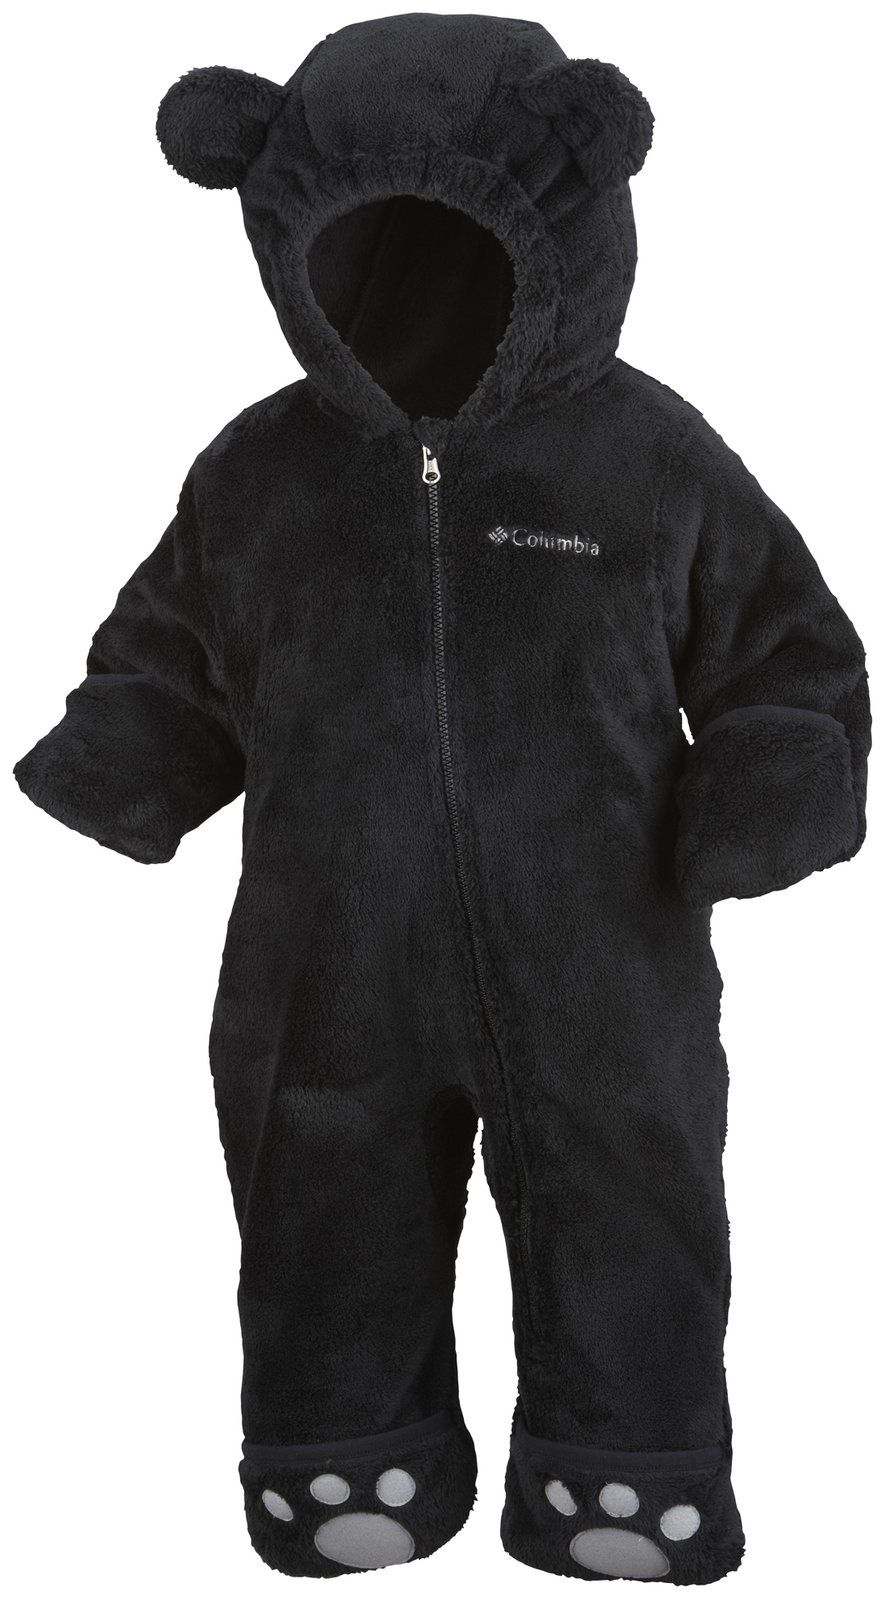 0d03e3484648 Columbia Sportswear Fox Baby - Best Price